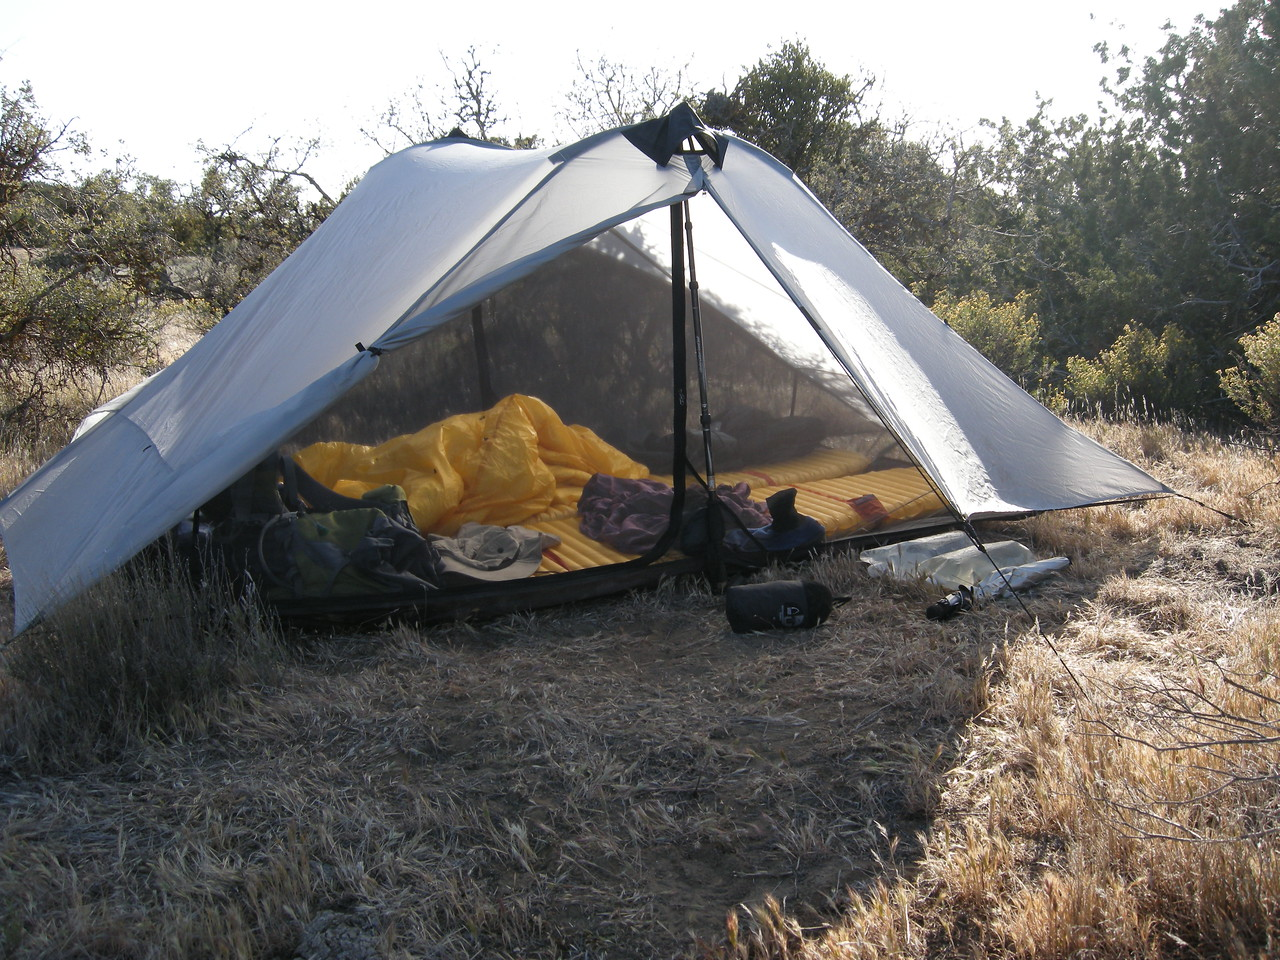 Our Six Moon Designs Lunar Duo, with Ray Jardine quilt and dual Thermarest NeoAir mattresses. Two hiking poles hold up the tent. Additional water pouches beside the tent; this trail is dry and you must carry all your water.